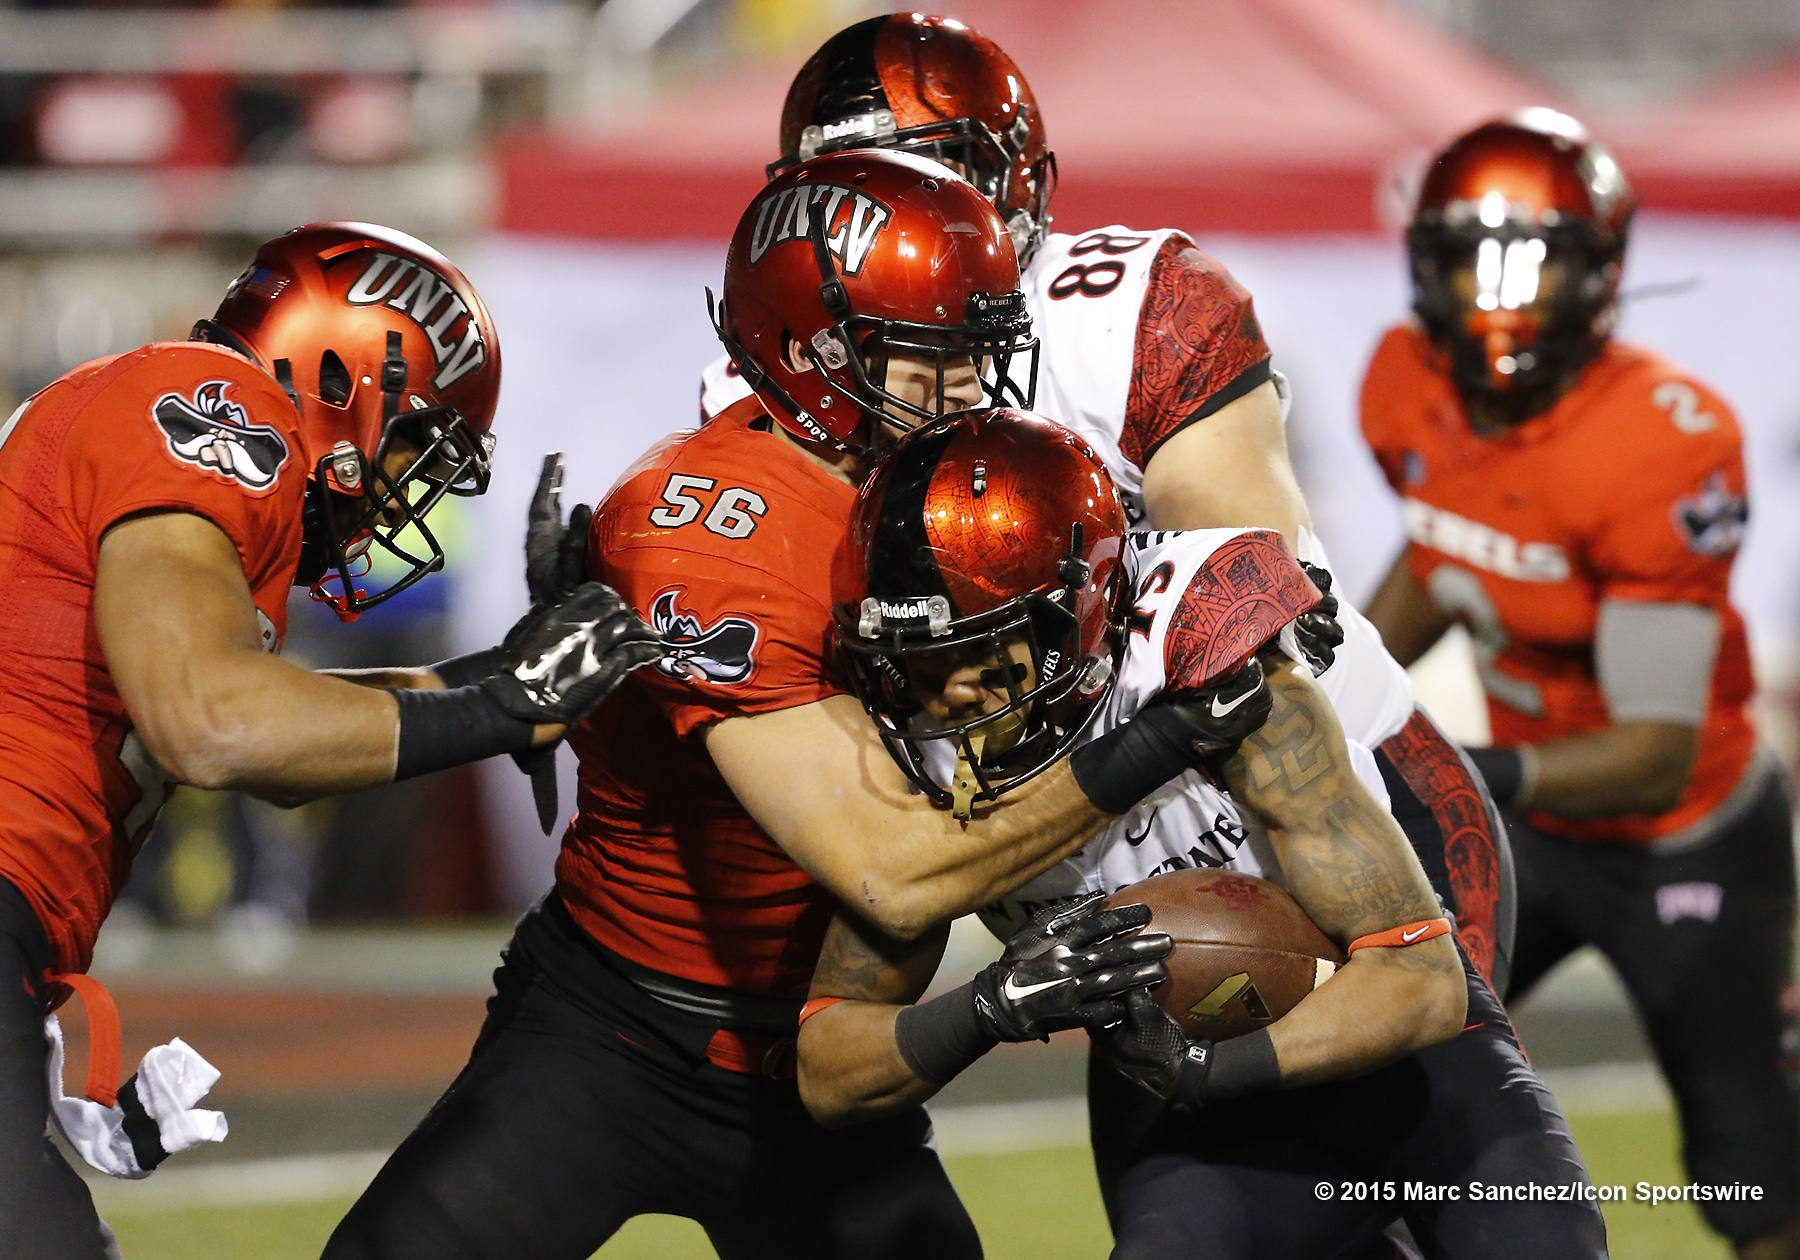 2015 November 21: Donnel Pumphrey (19) San Diego State University running back during a game against UNLV at the Sam Boyd Stadium in Las Vegas, Nevada.  (Photo by Marc Sanchez/Icon Sportswire)